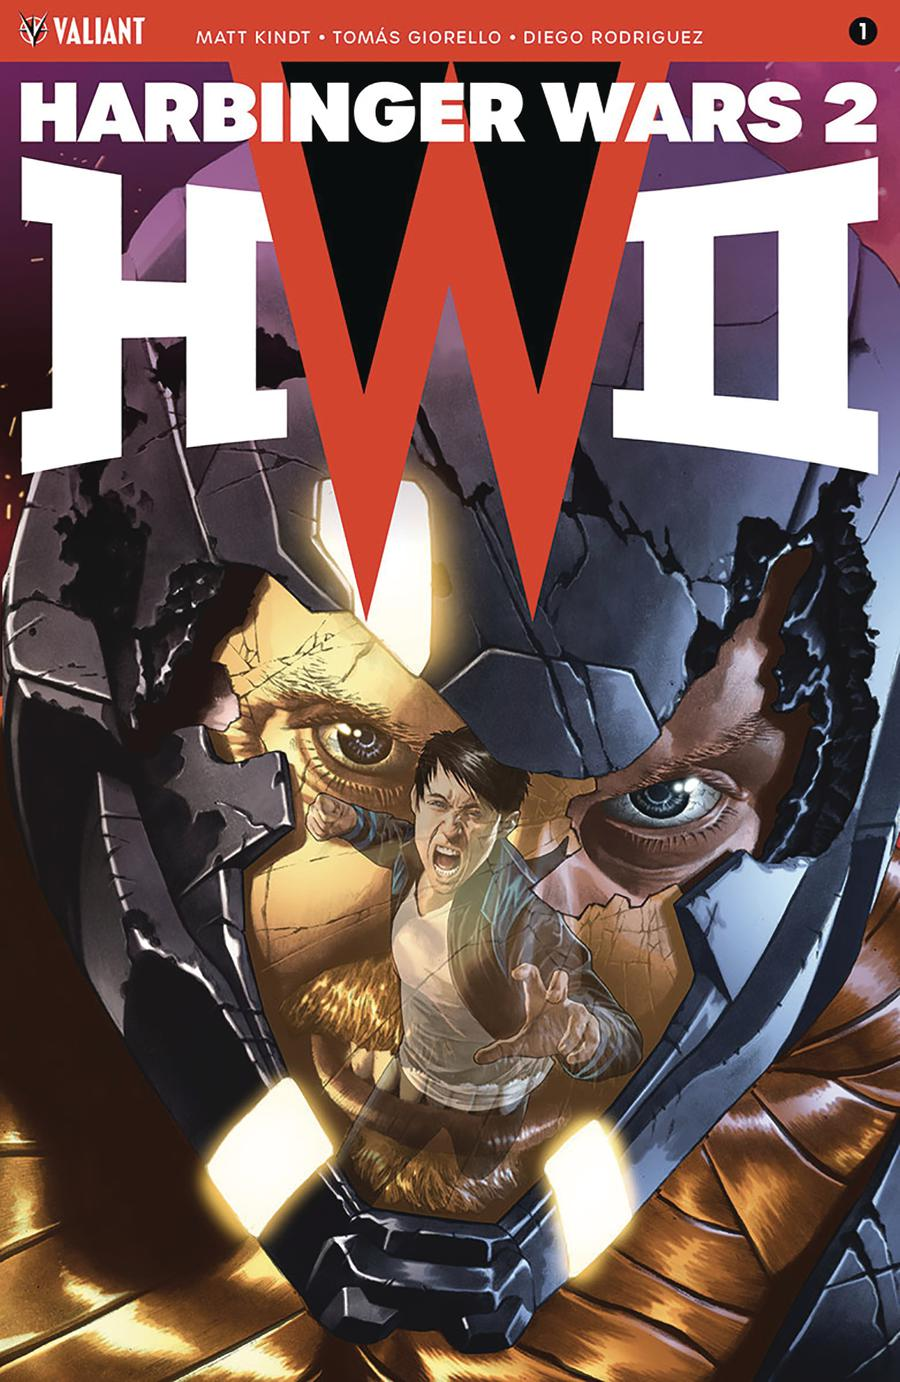 Harbinger Wars 2 #1 Cover B Variant Mico Suayan Cover